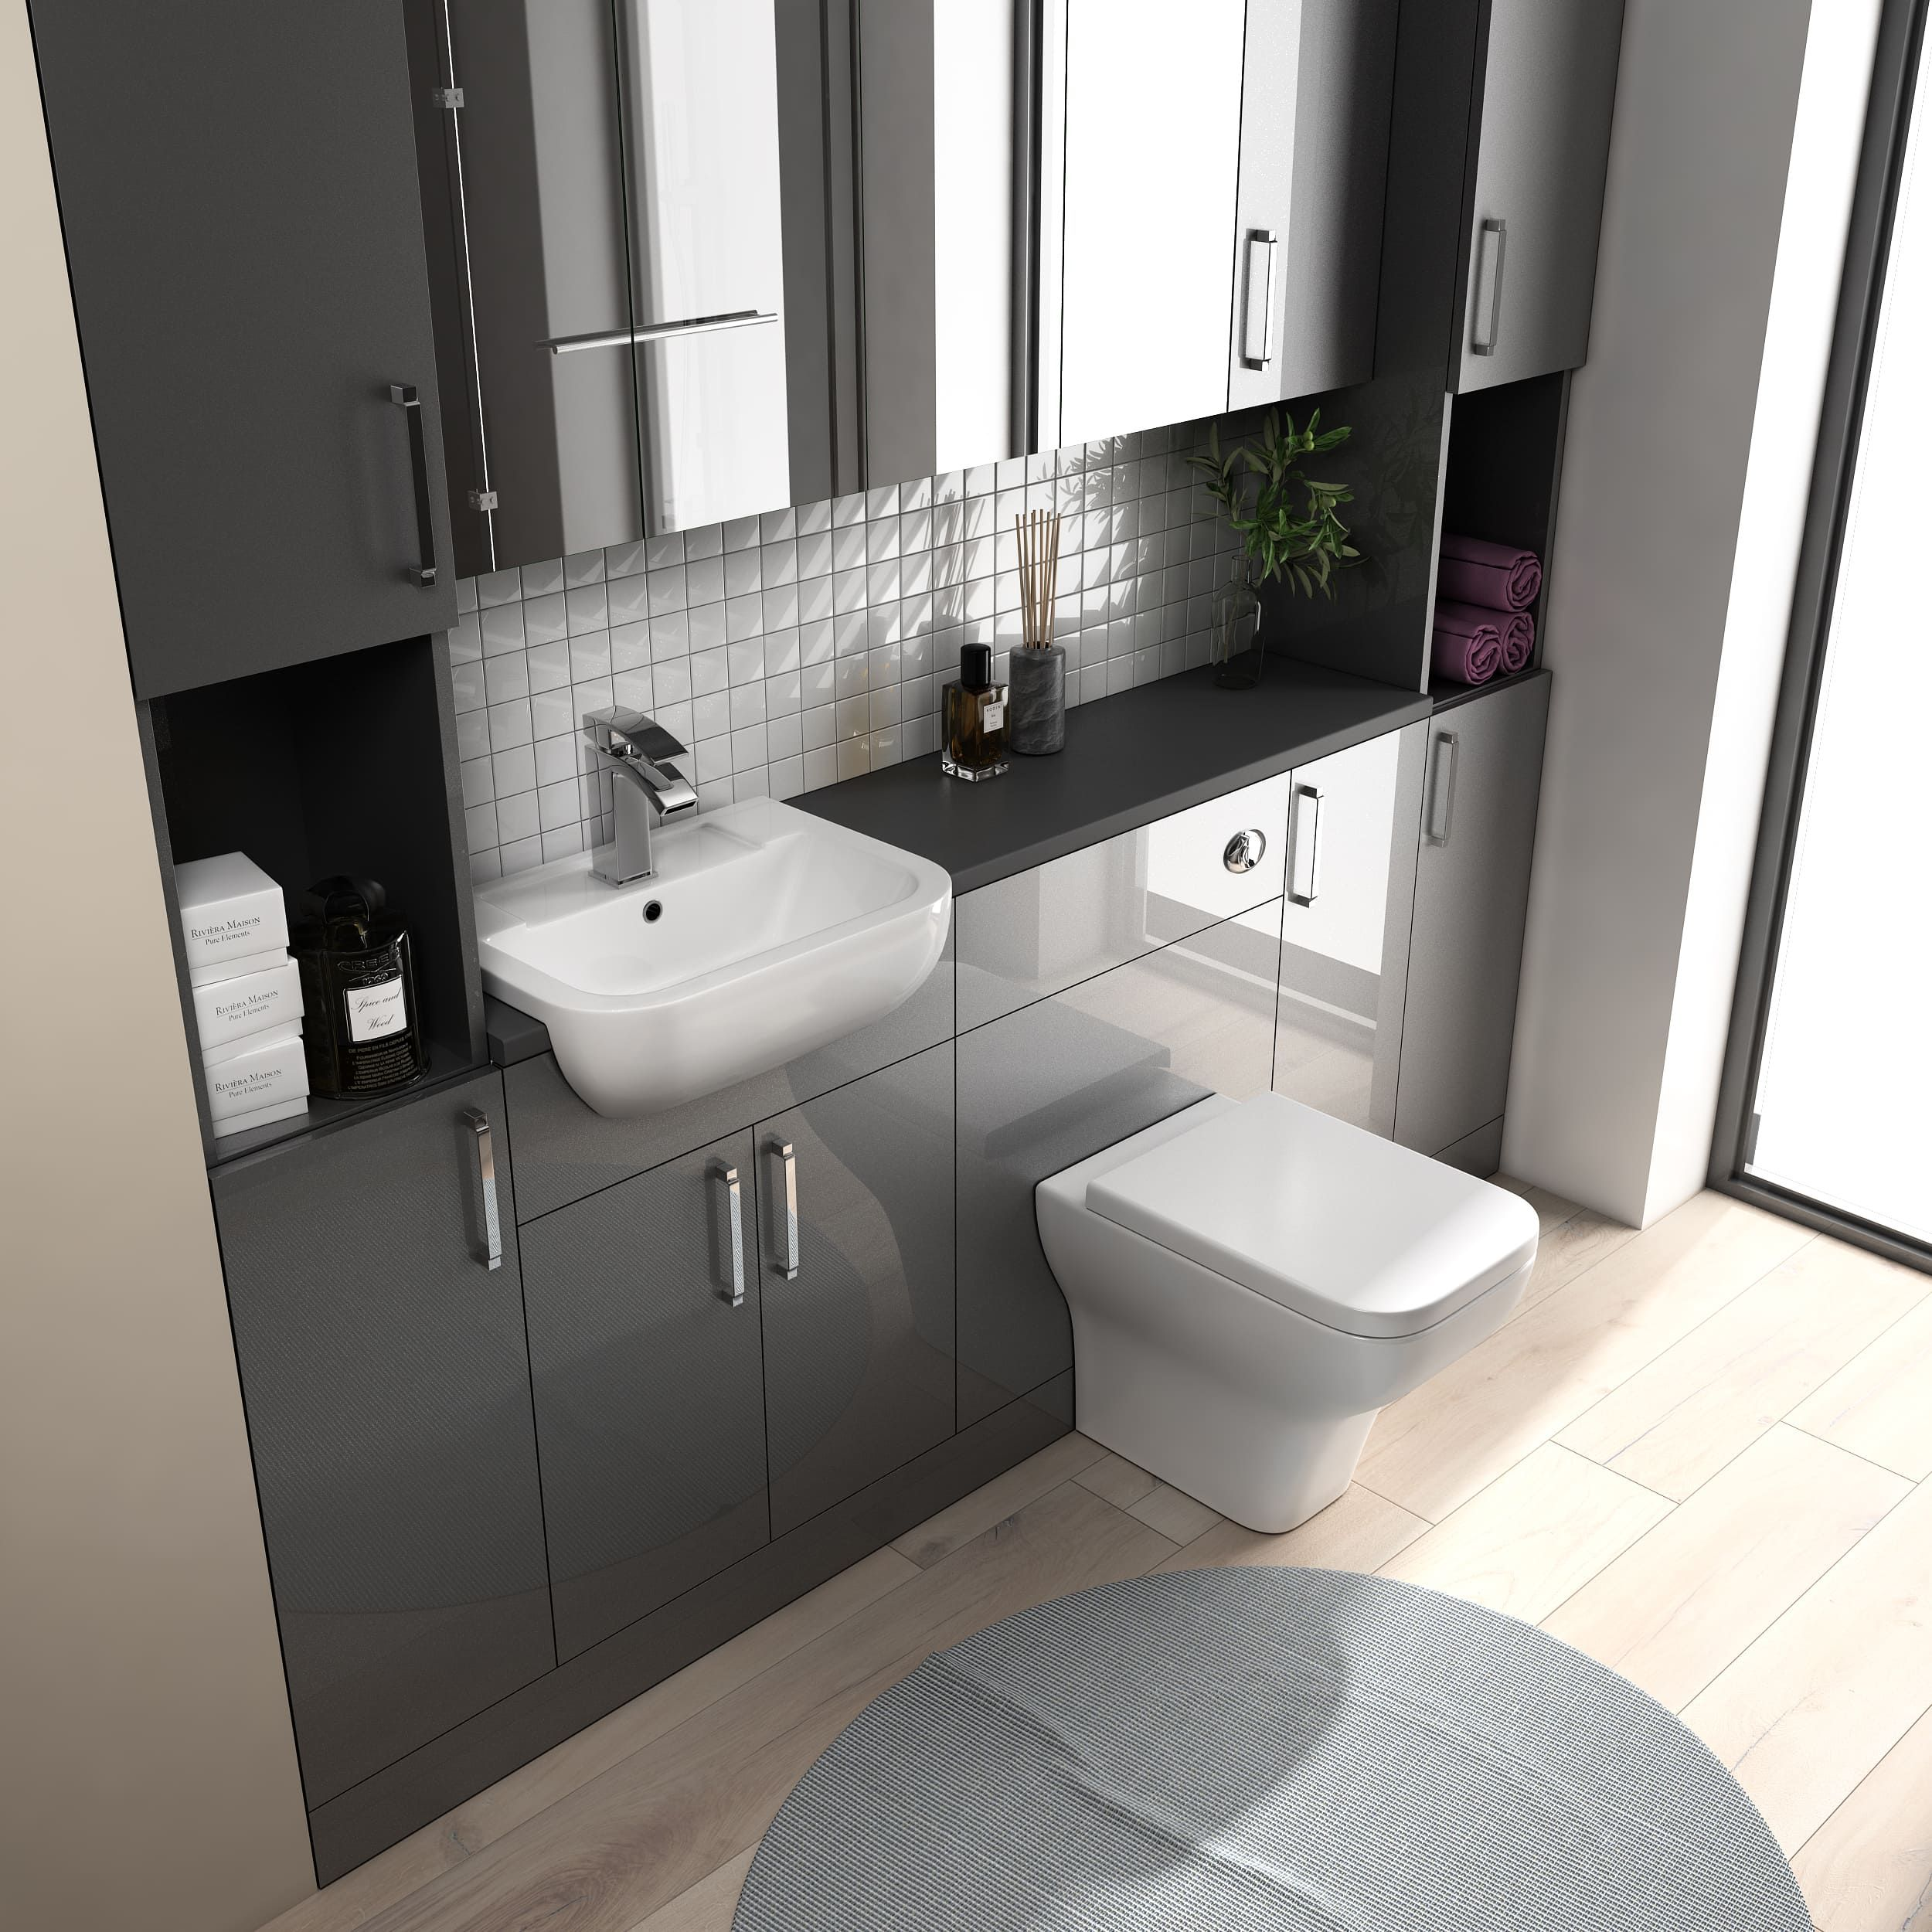 Oliver 2100 Fitted Bathroom Suite Mirror Cabinets Fitted Furniture Fitted Bathroom Furniture